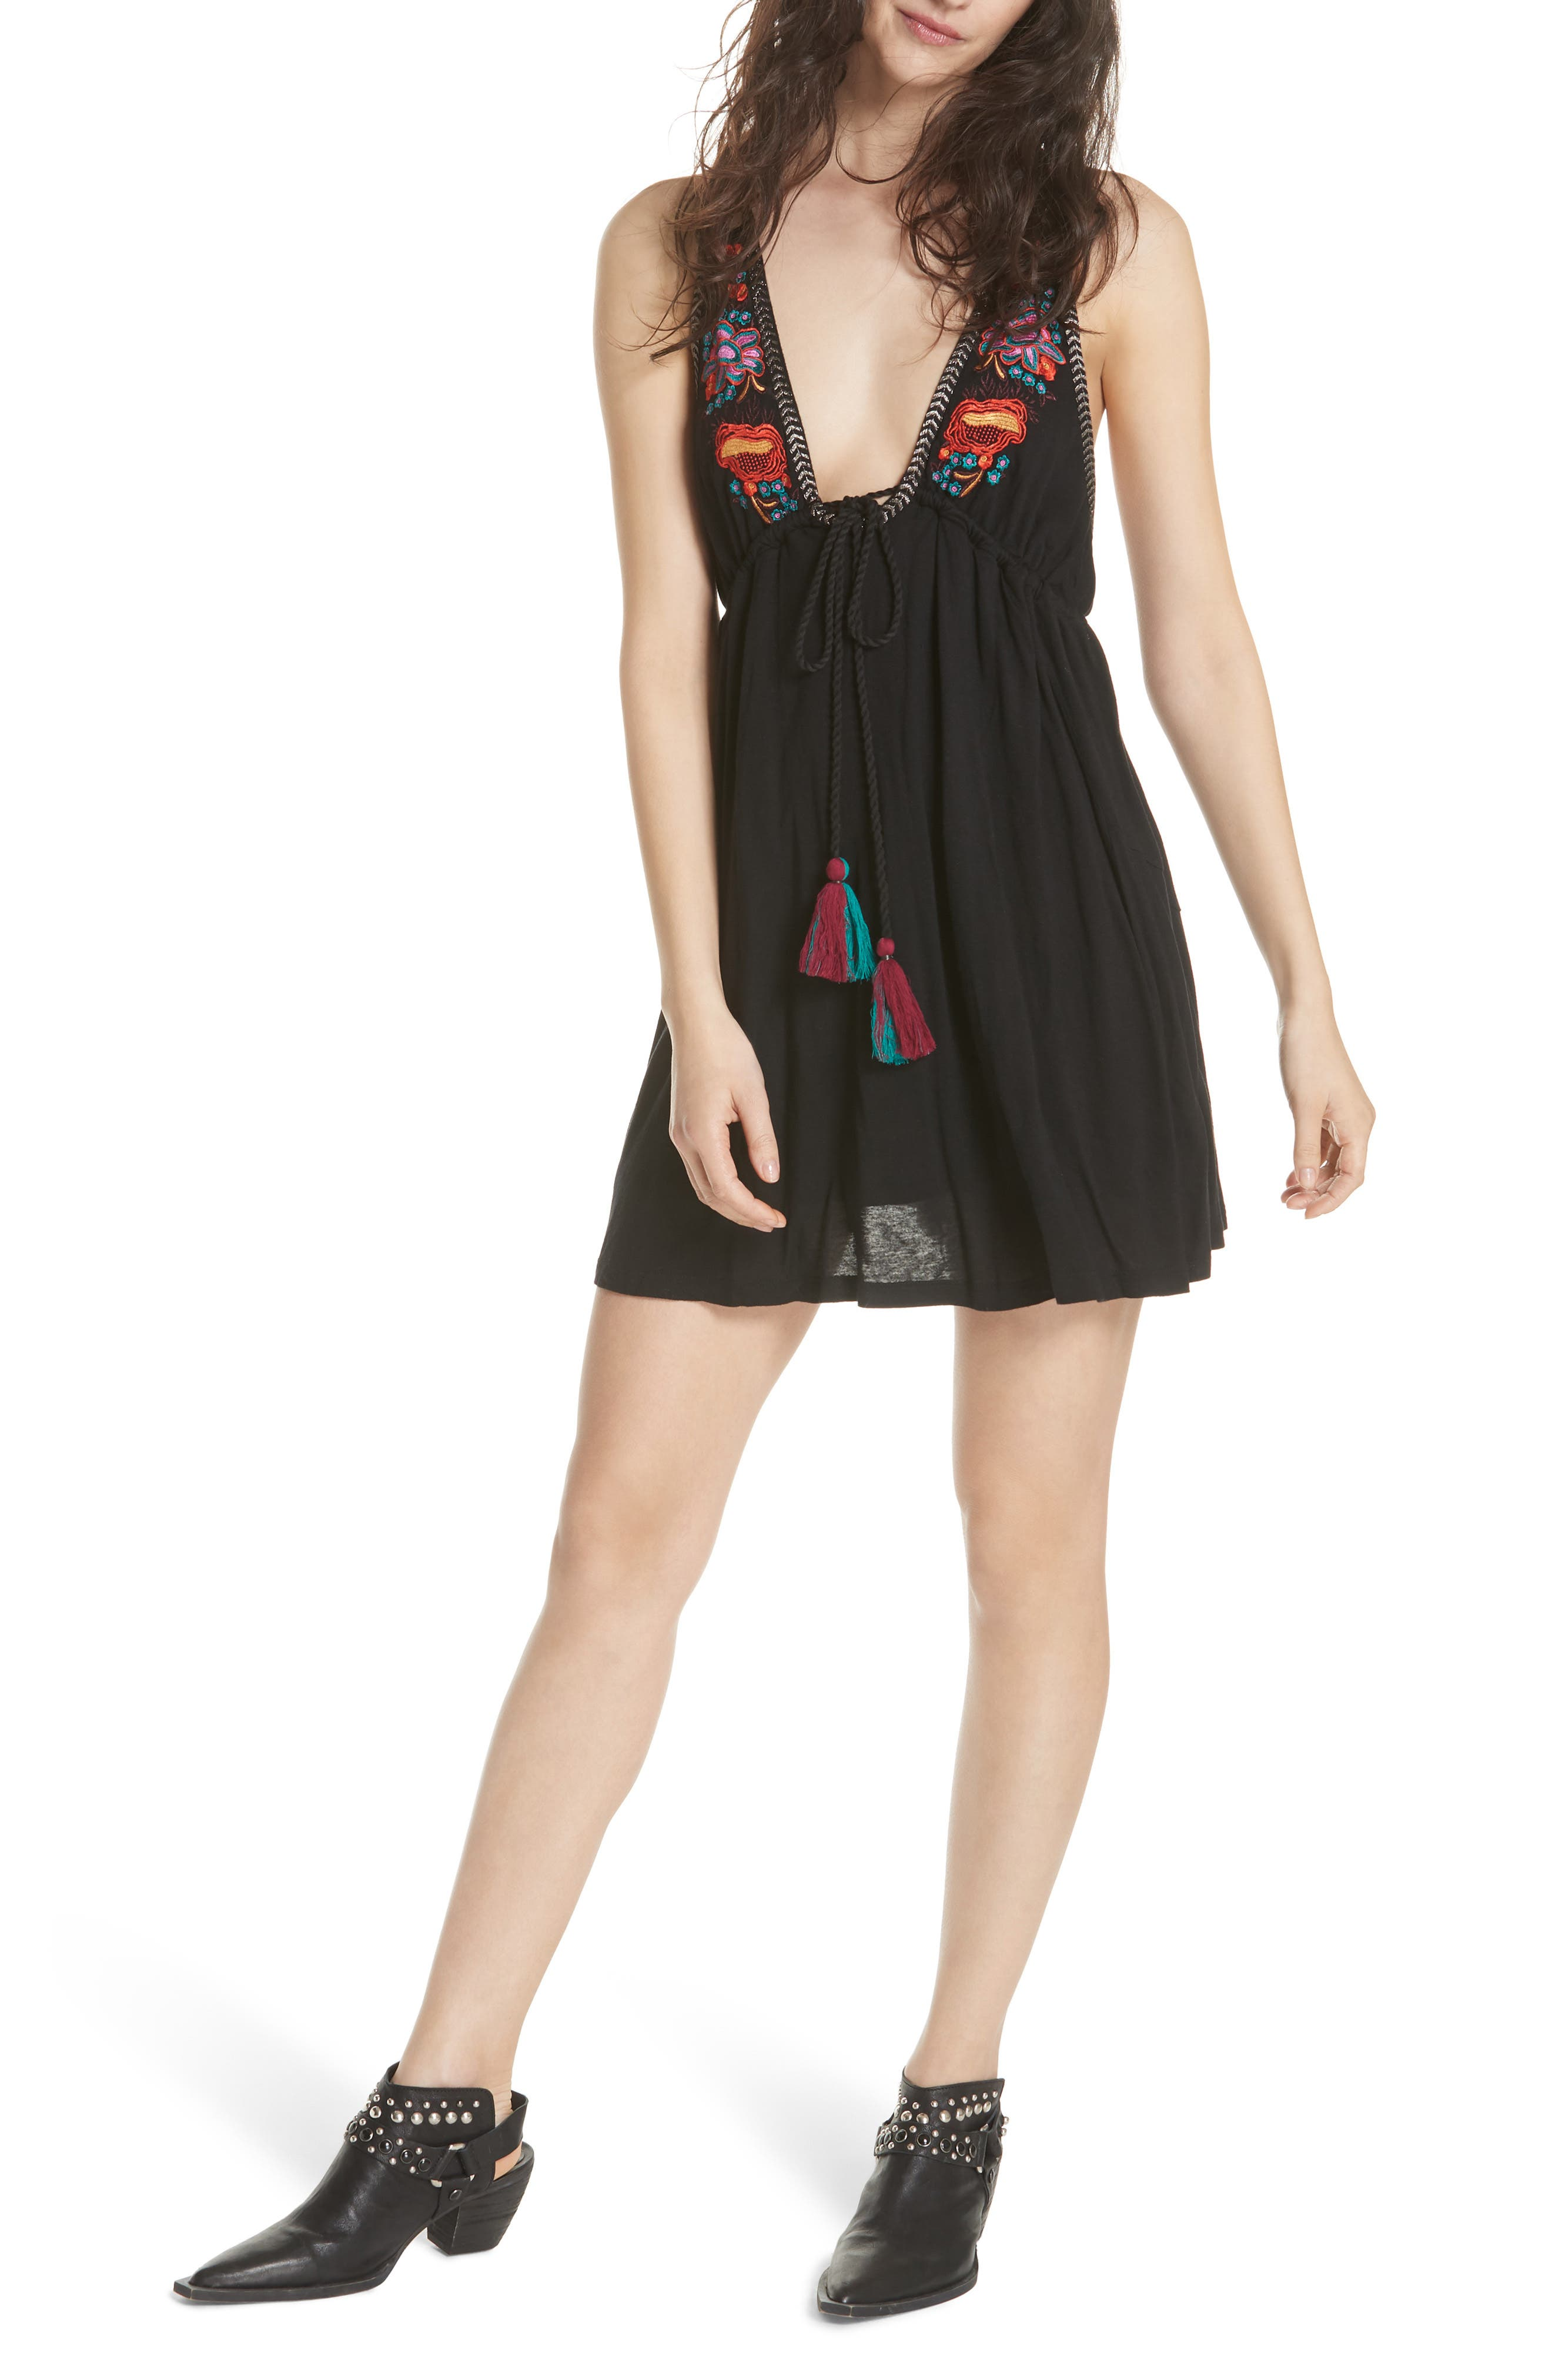 Lovers Cove Minidress,                         Main,                         color,